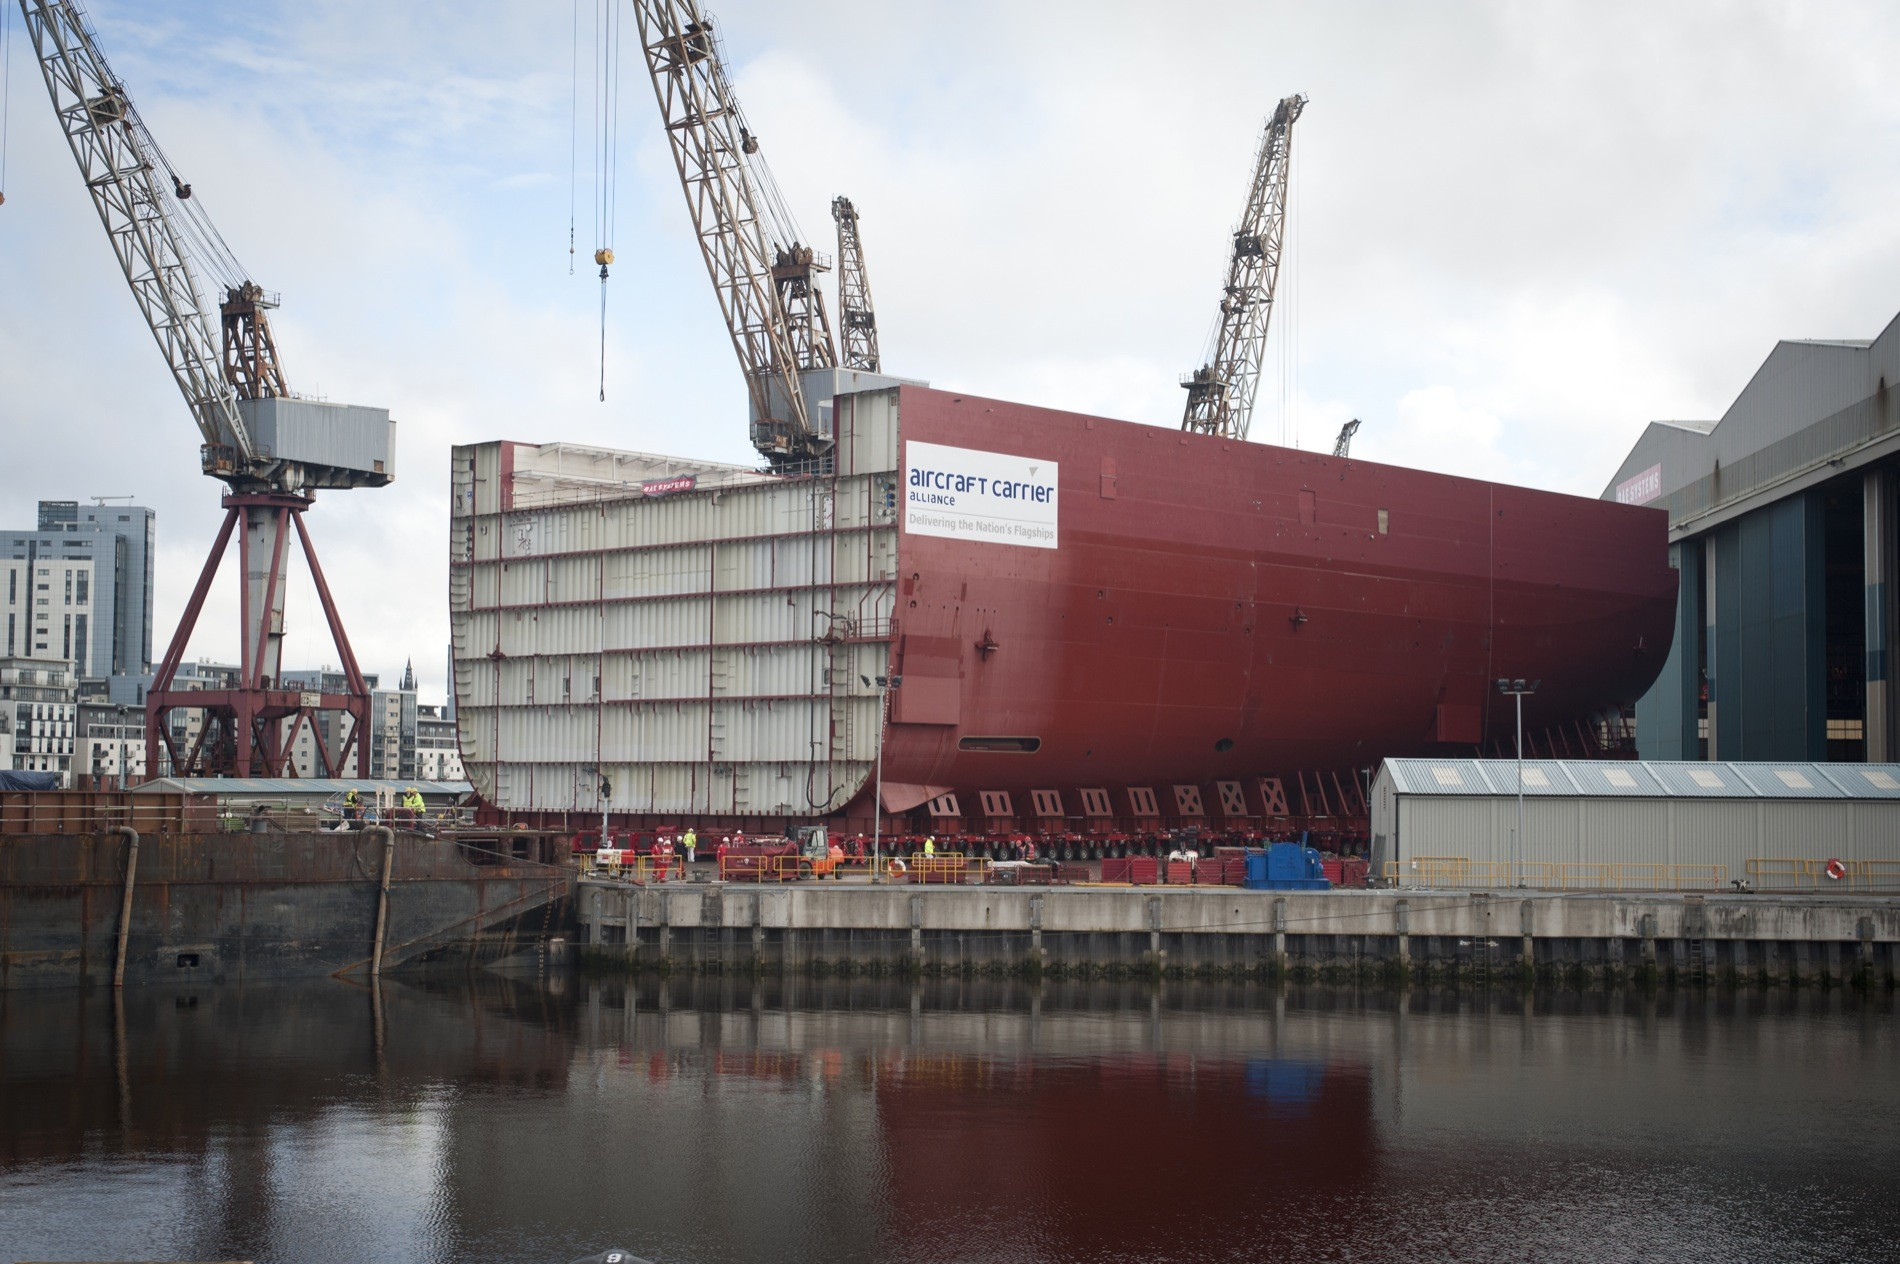 Nation&#039;s flagship is on the move - Lower Block 04, the biggest hull section of HMS Queen Elizabeth at 11,300 tonnes, is rolled out of the shipbuild halls at BAE Systems&#039; Govan yard on the Clyde ahead of her journey to Rosyth. Photo (c) BAE System&#039;s